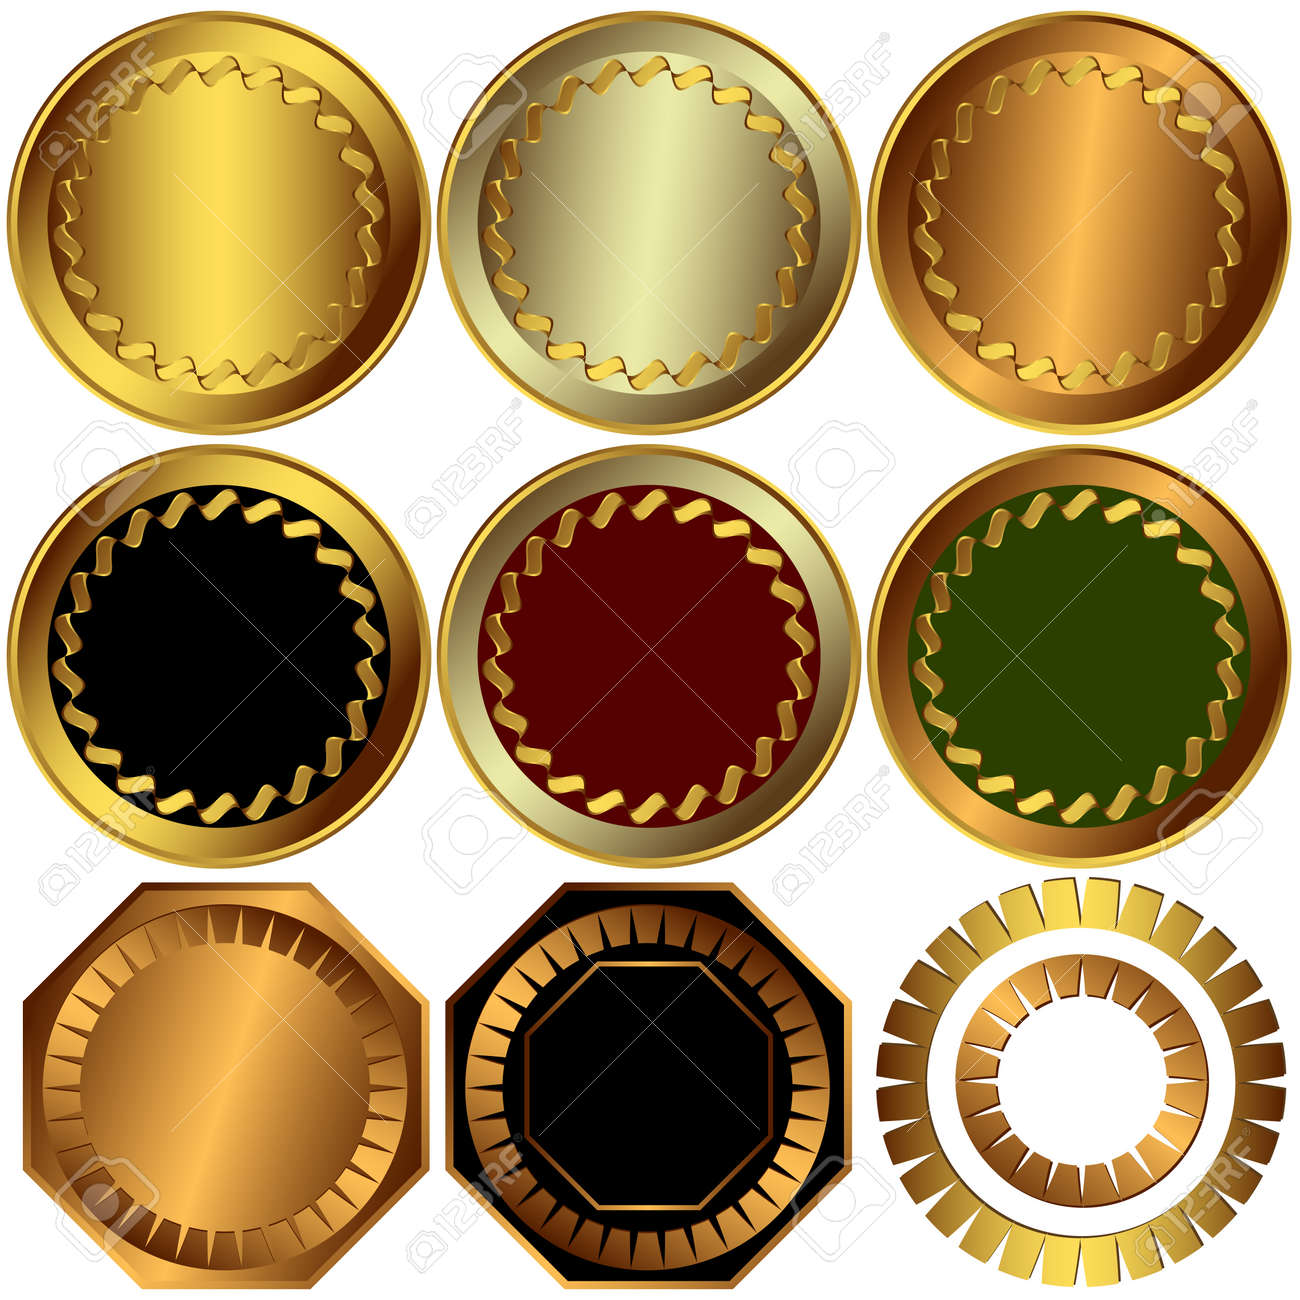 Collection  gold, silver and bronze awards Stock Vector - 6398547